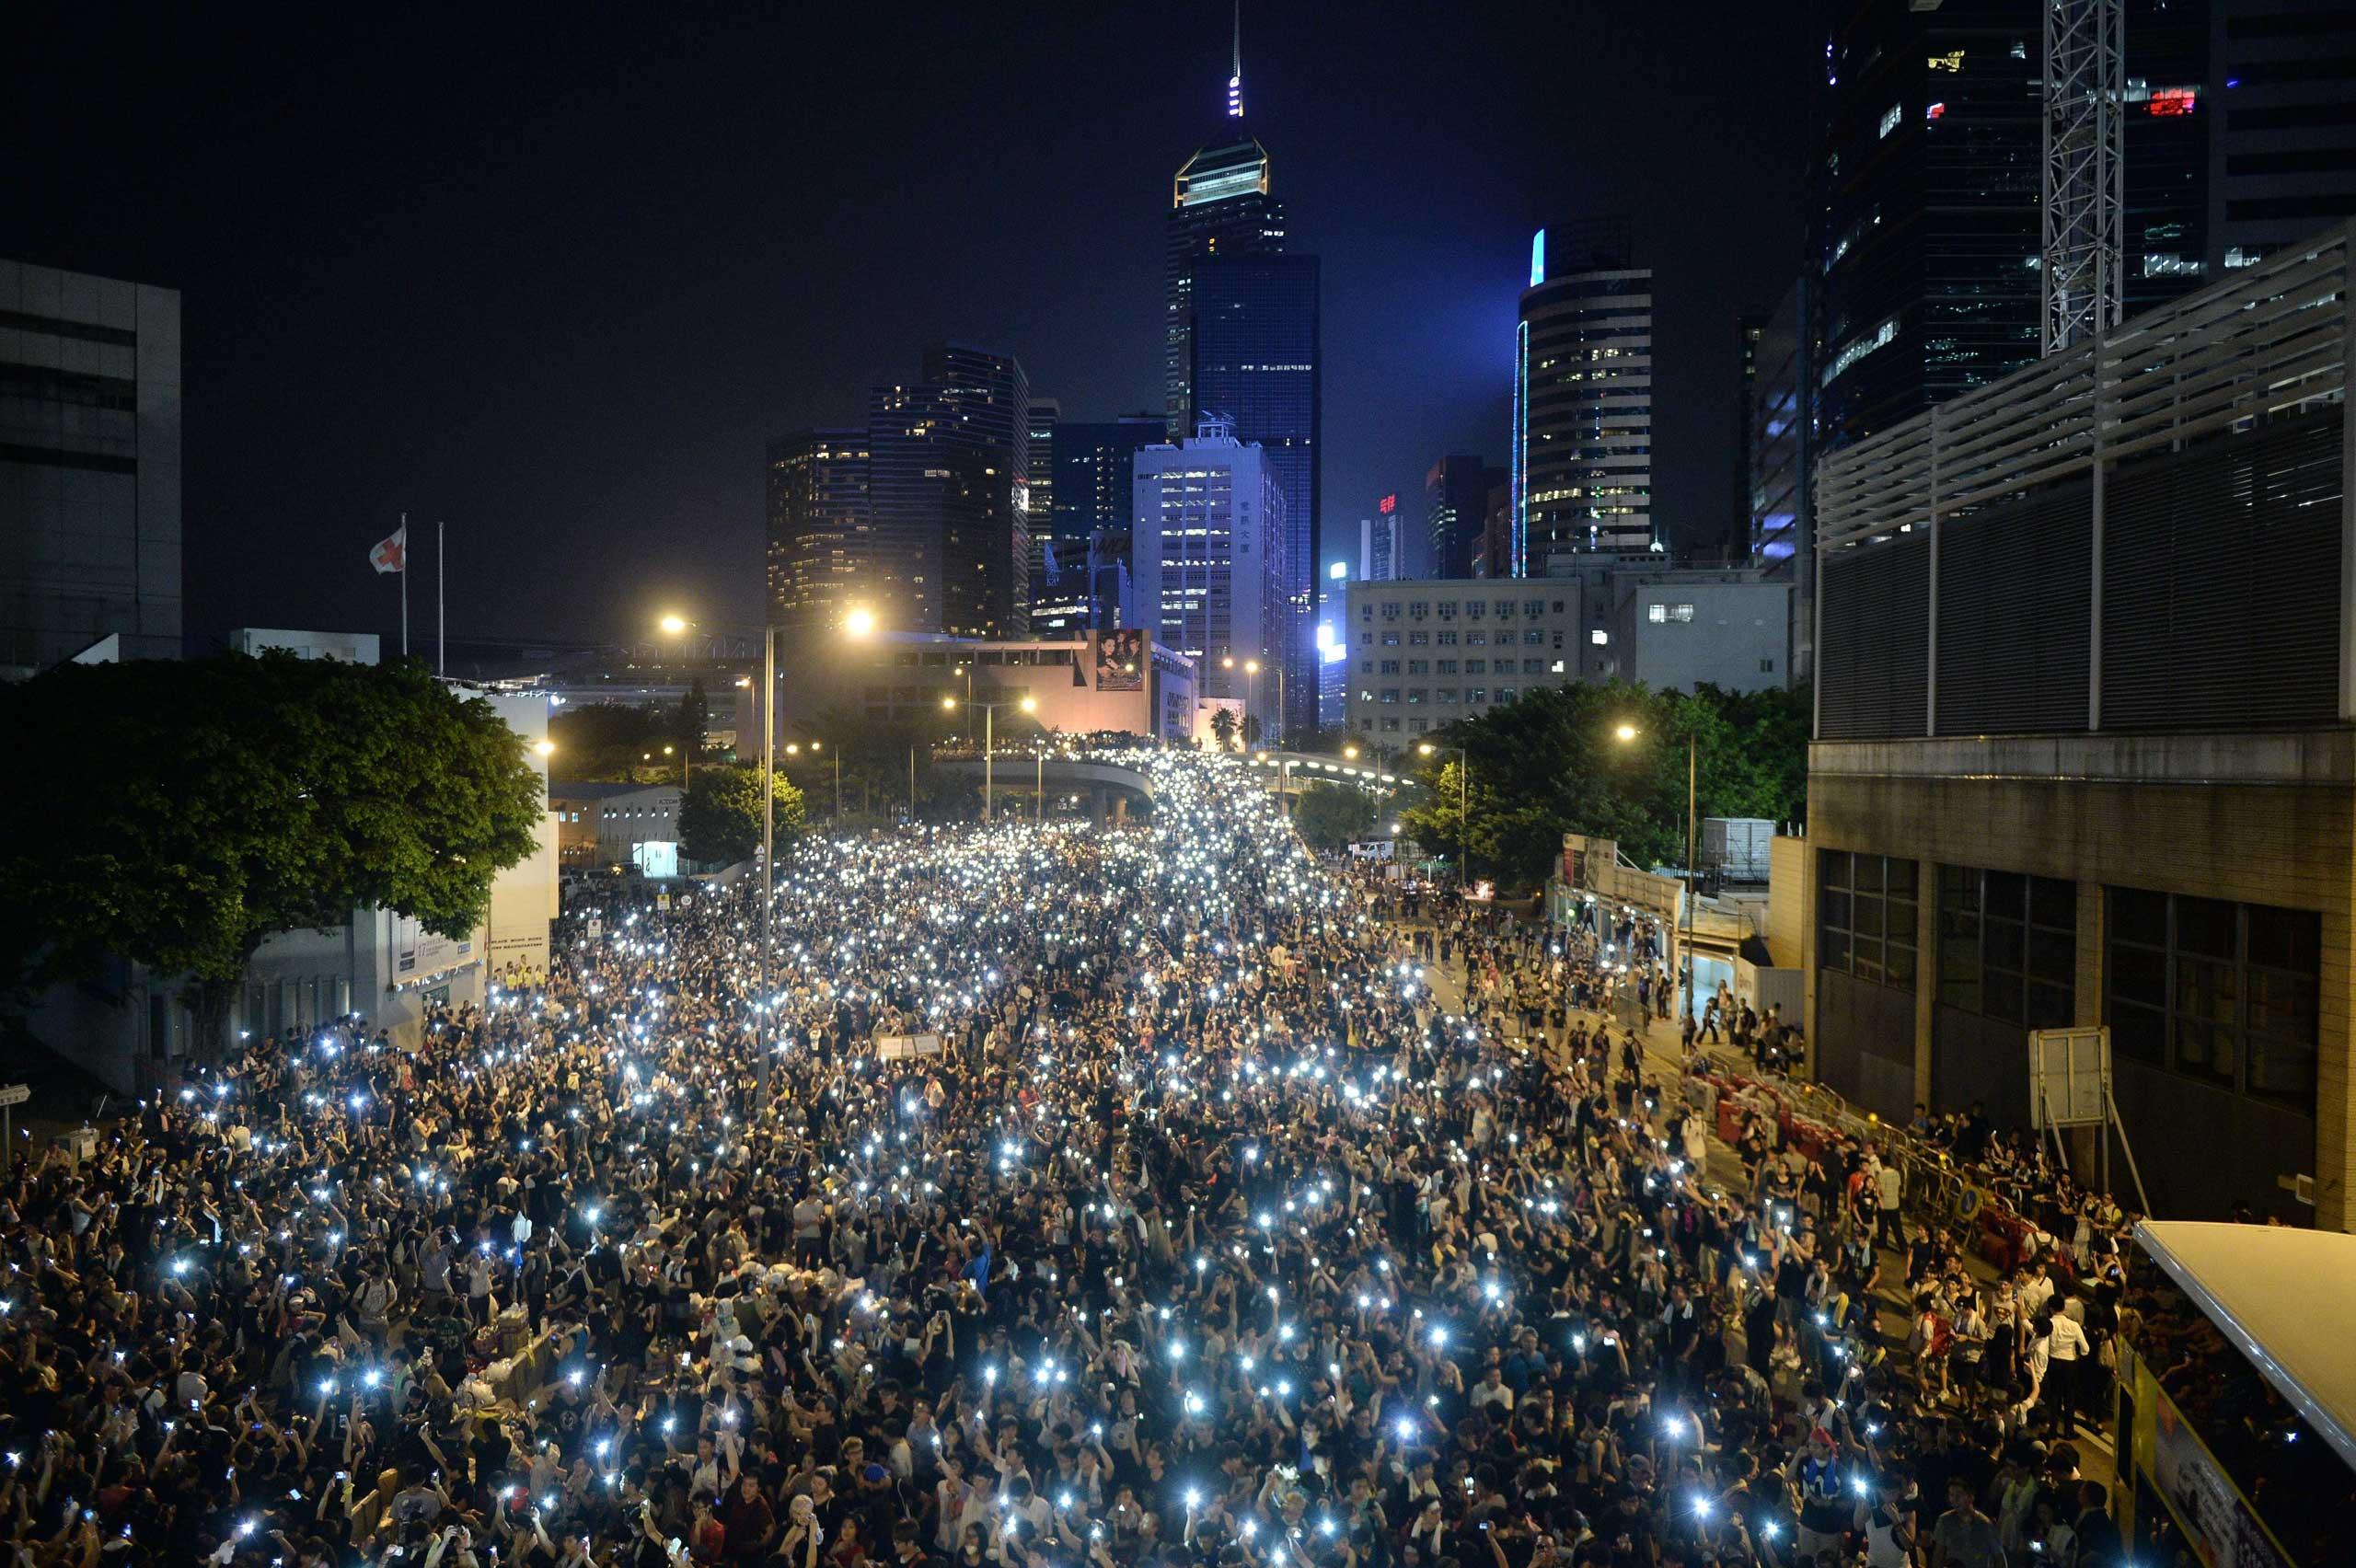 Pro-democracy demonstrators hold up their mobile phones during a protest near the Hong Kong government headquarters on Sept. 29, 2014.